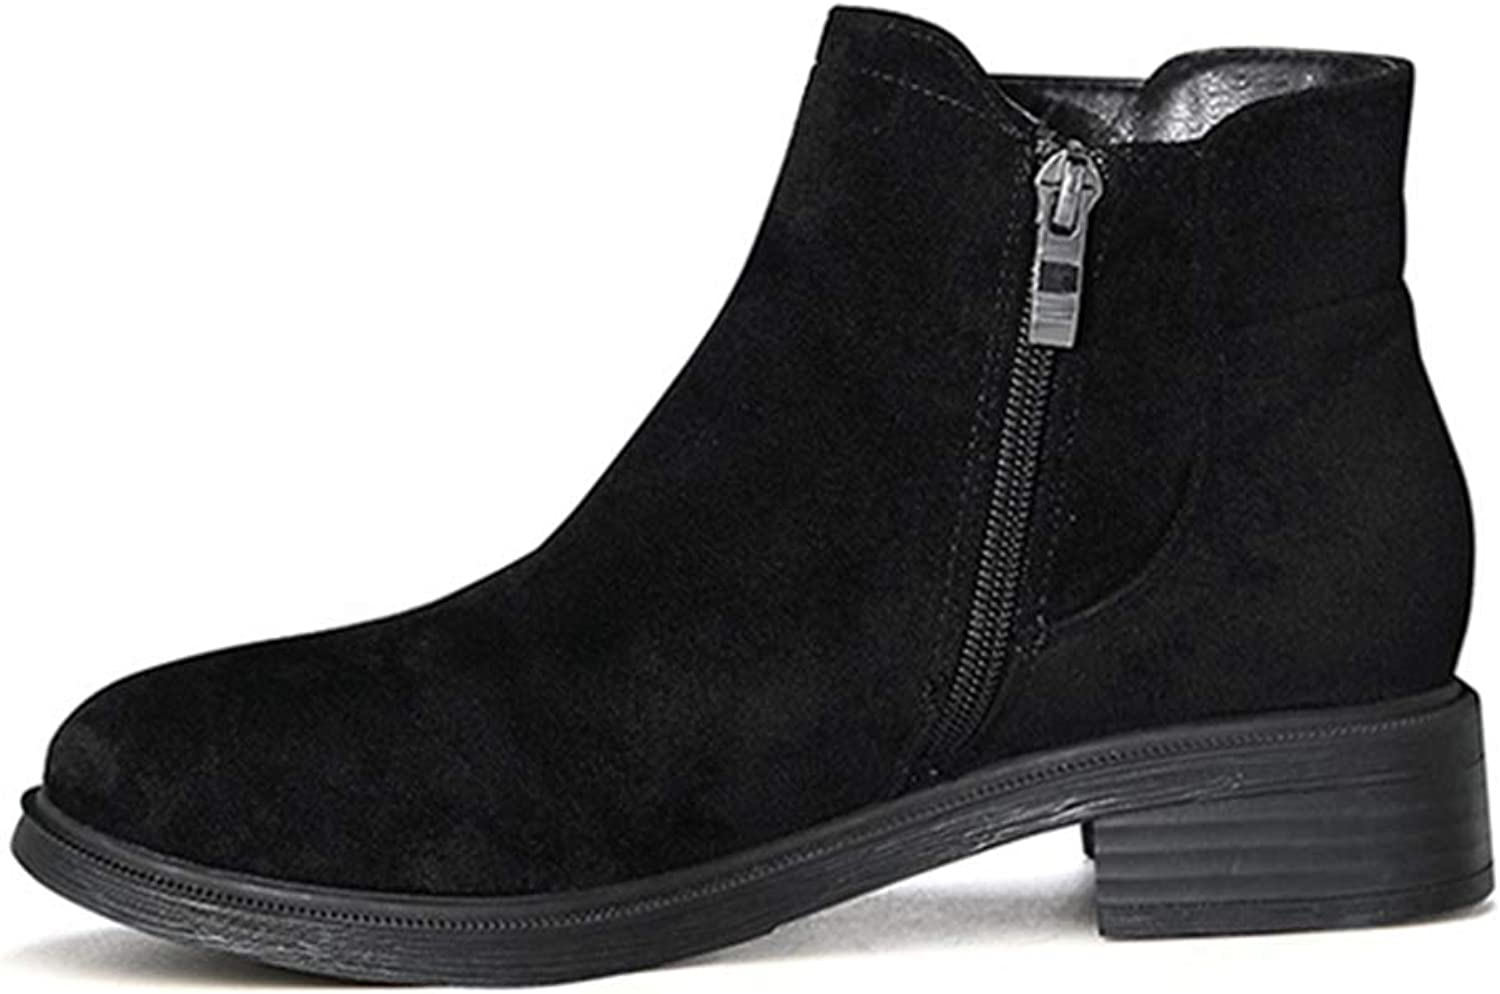 GIY Women's Side Zipper Winter Ankle Boots Round Toe Suede Leather Warm Fur Lined Flat Low Heel Casual Western Chelsea Boots